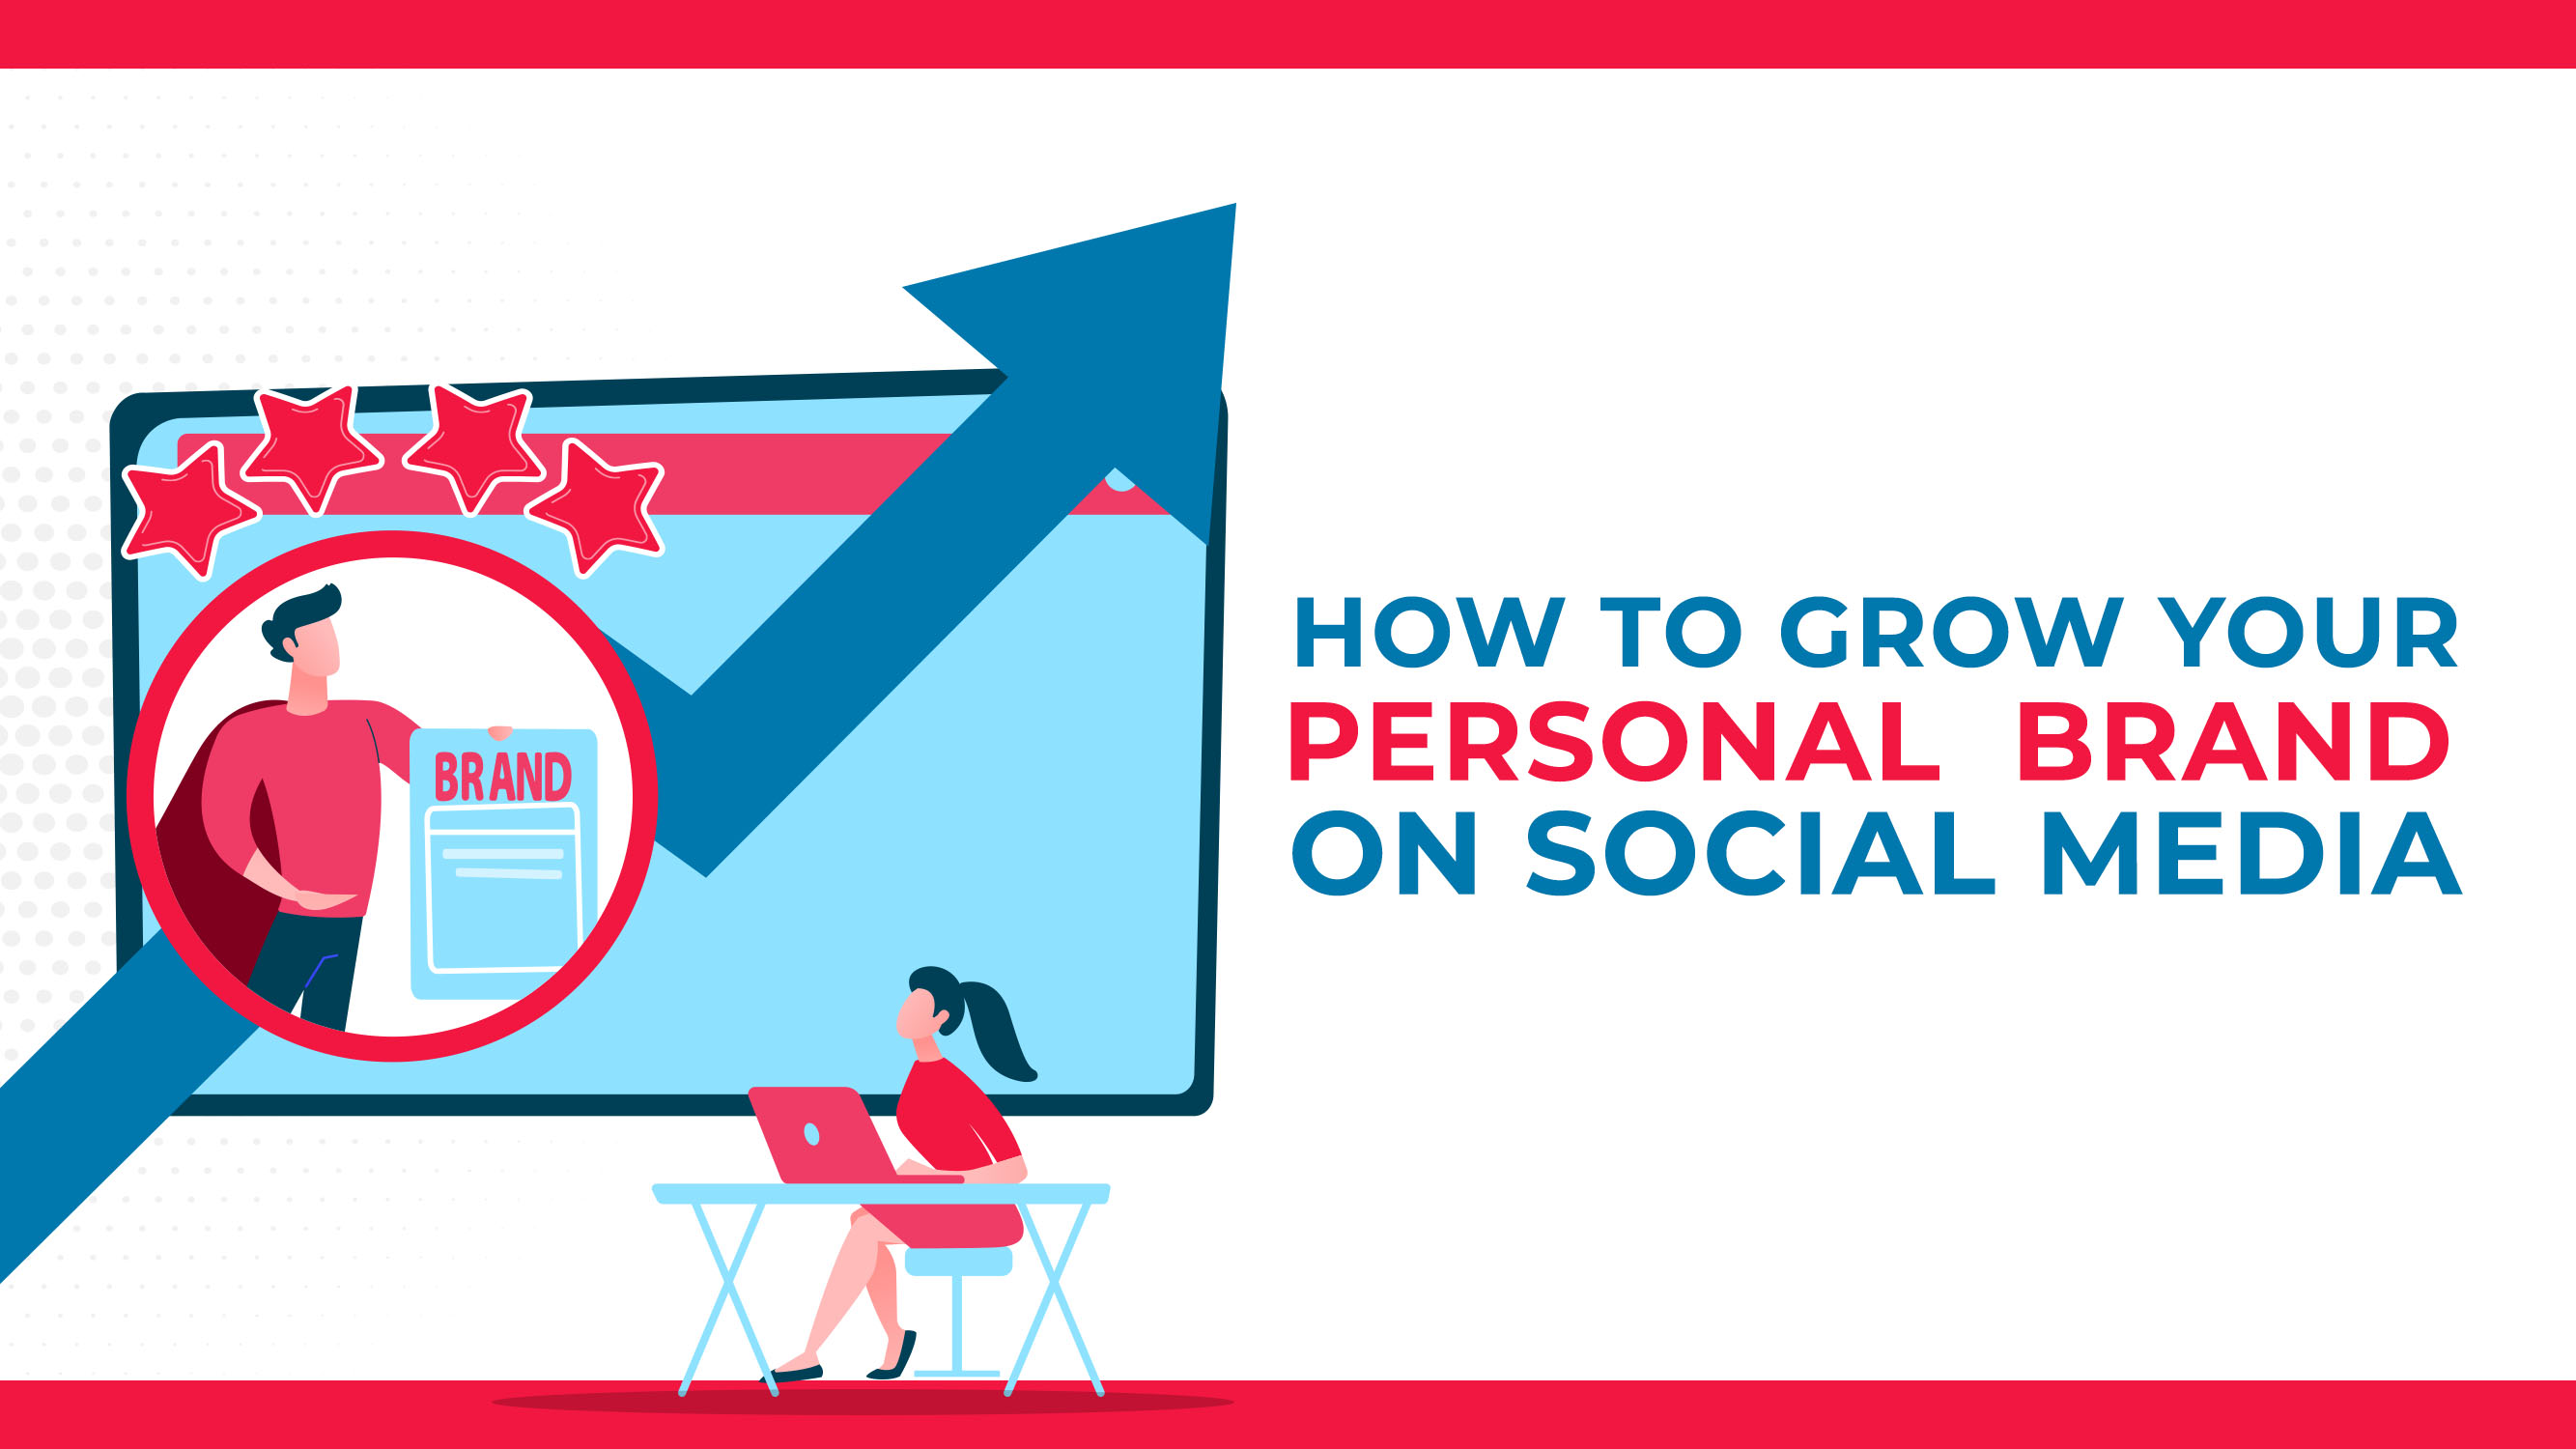 How To Grow Your Personal Brand On Social Media